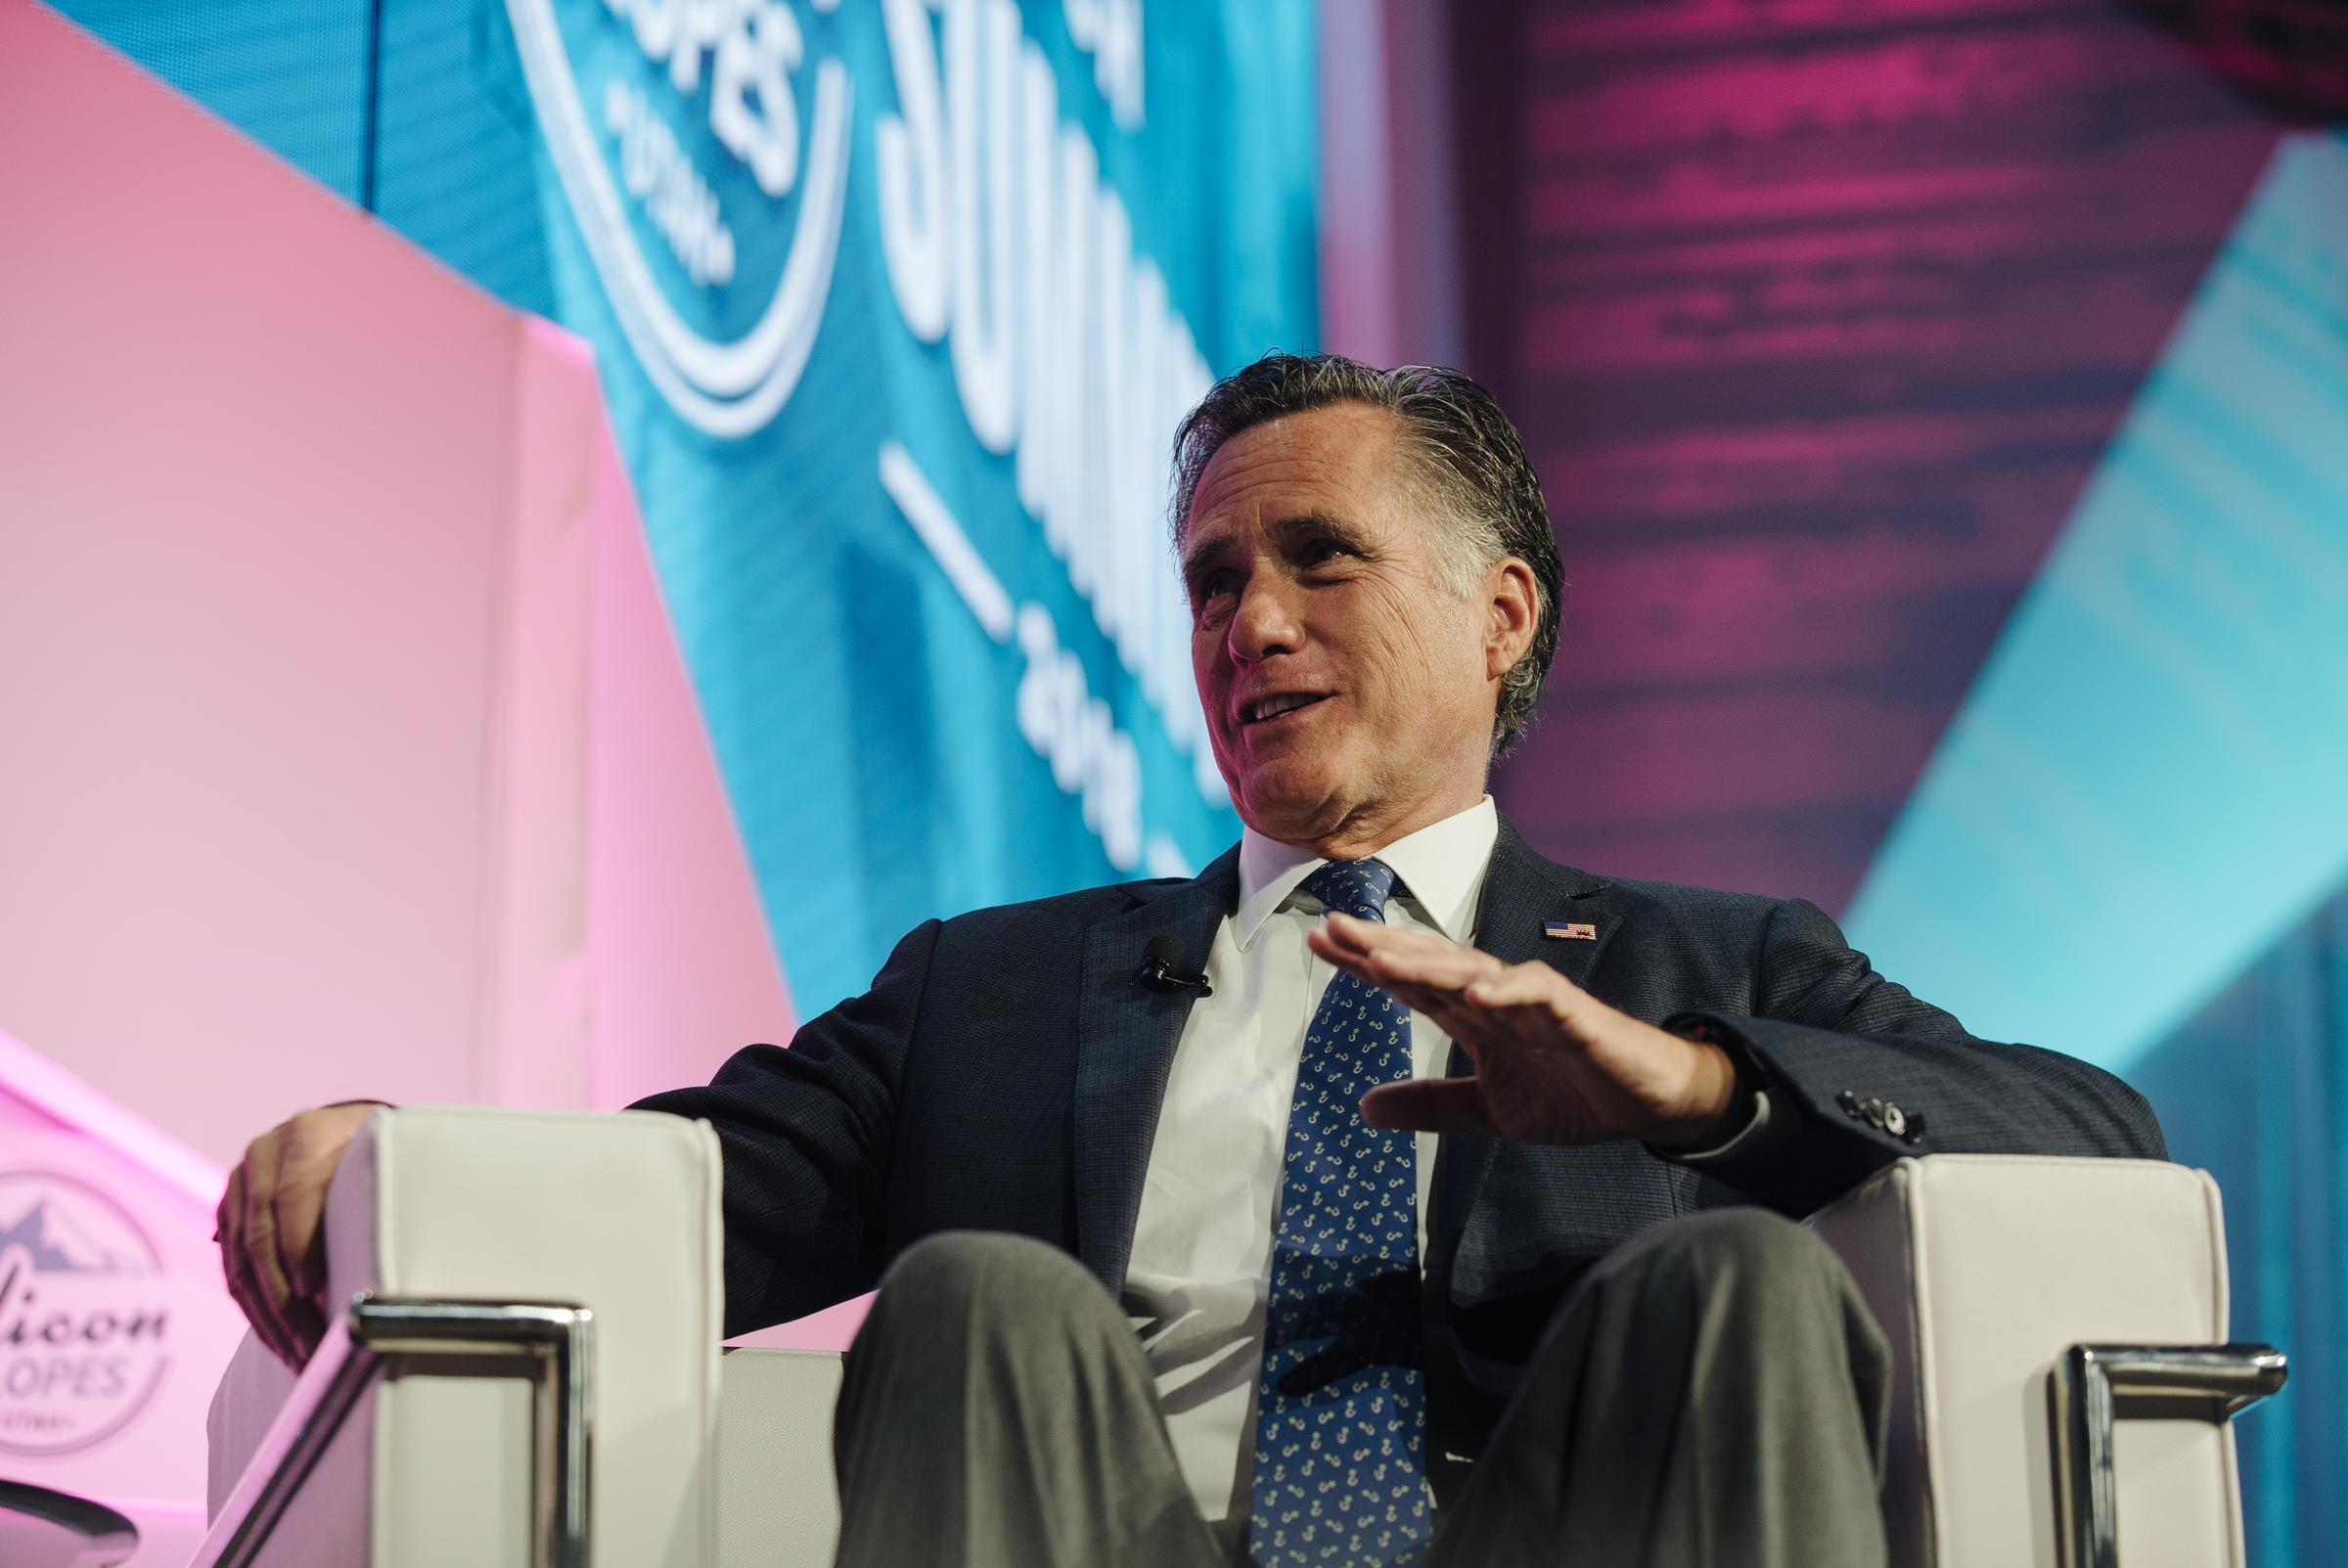 Mitt Romney: I'm 'More Conservative' Than Trump